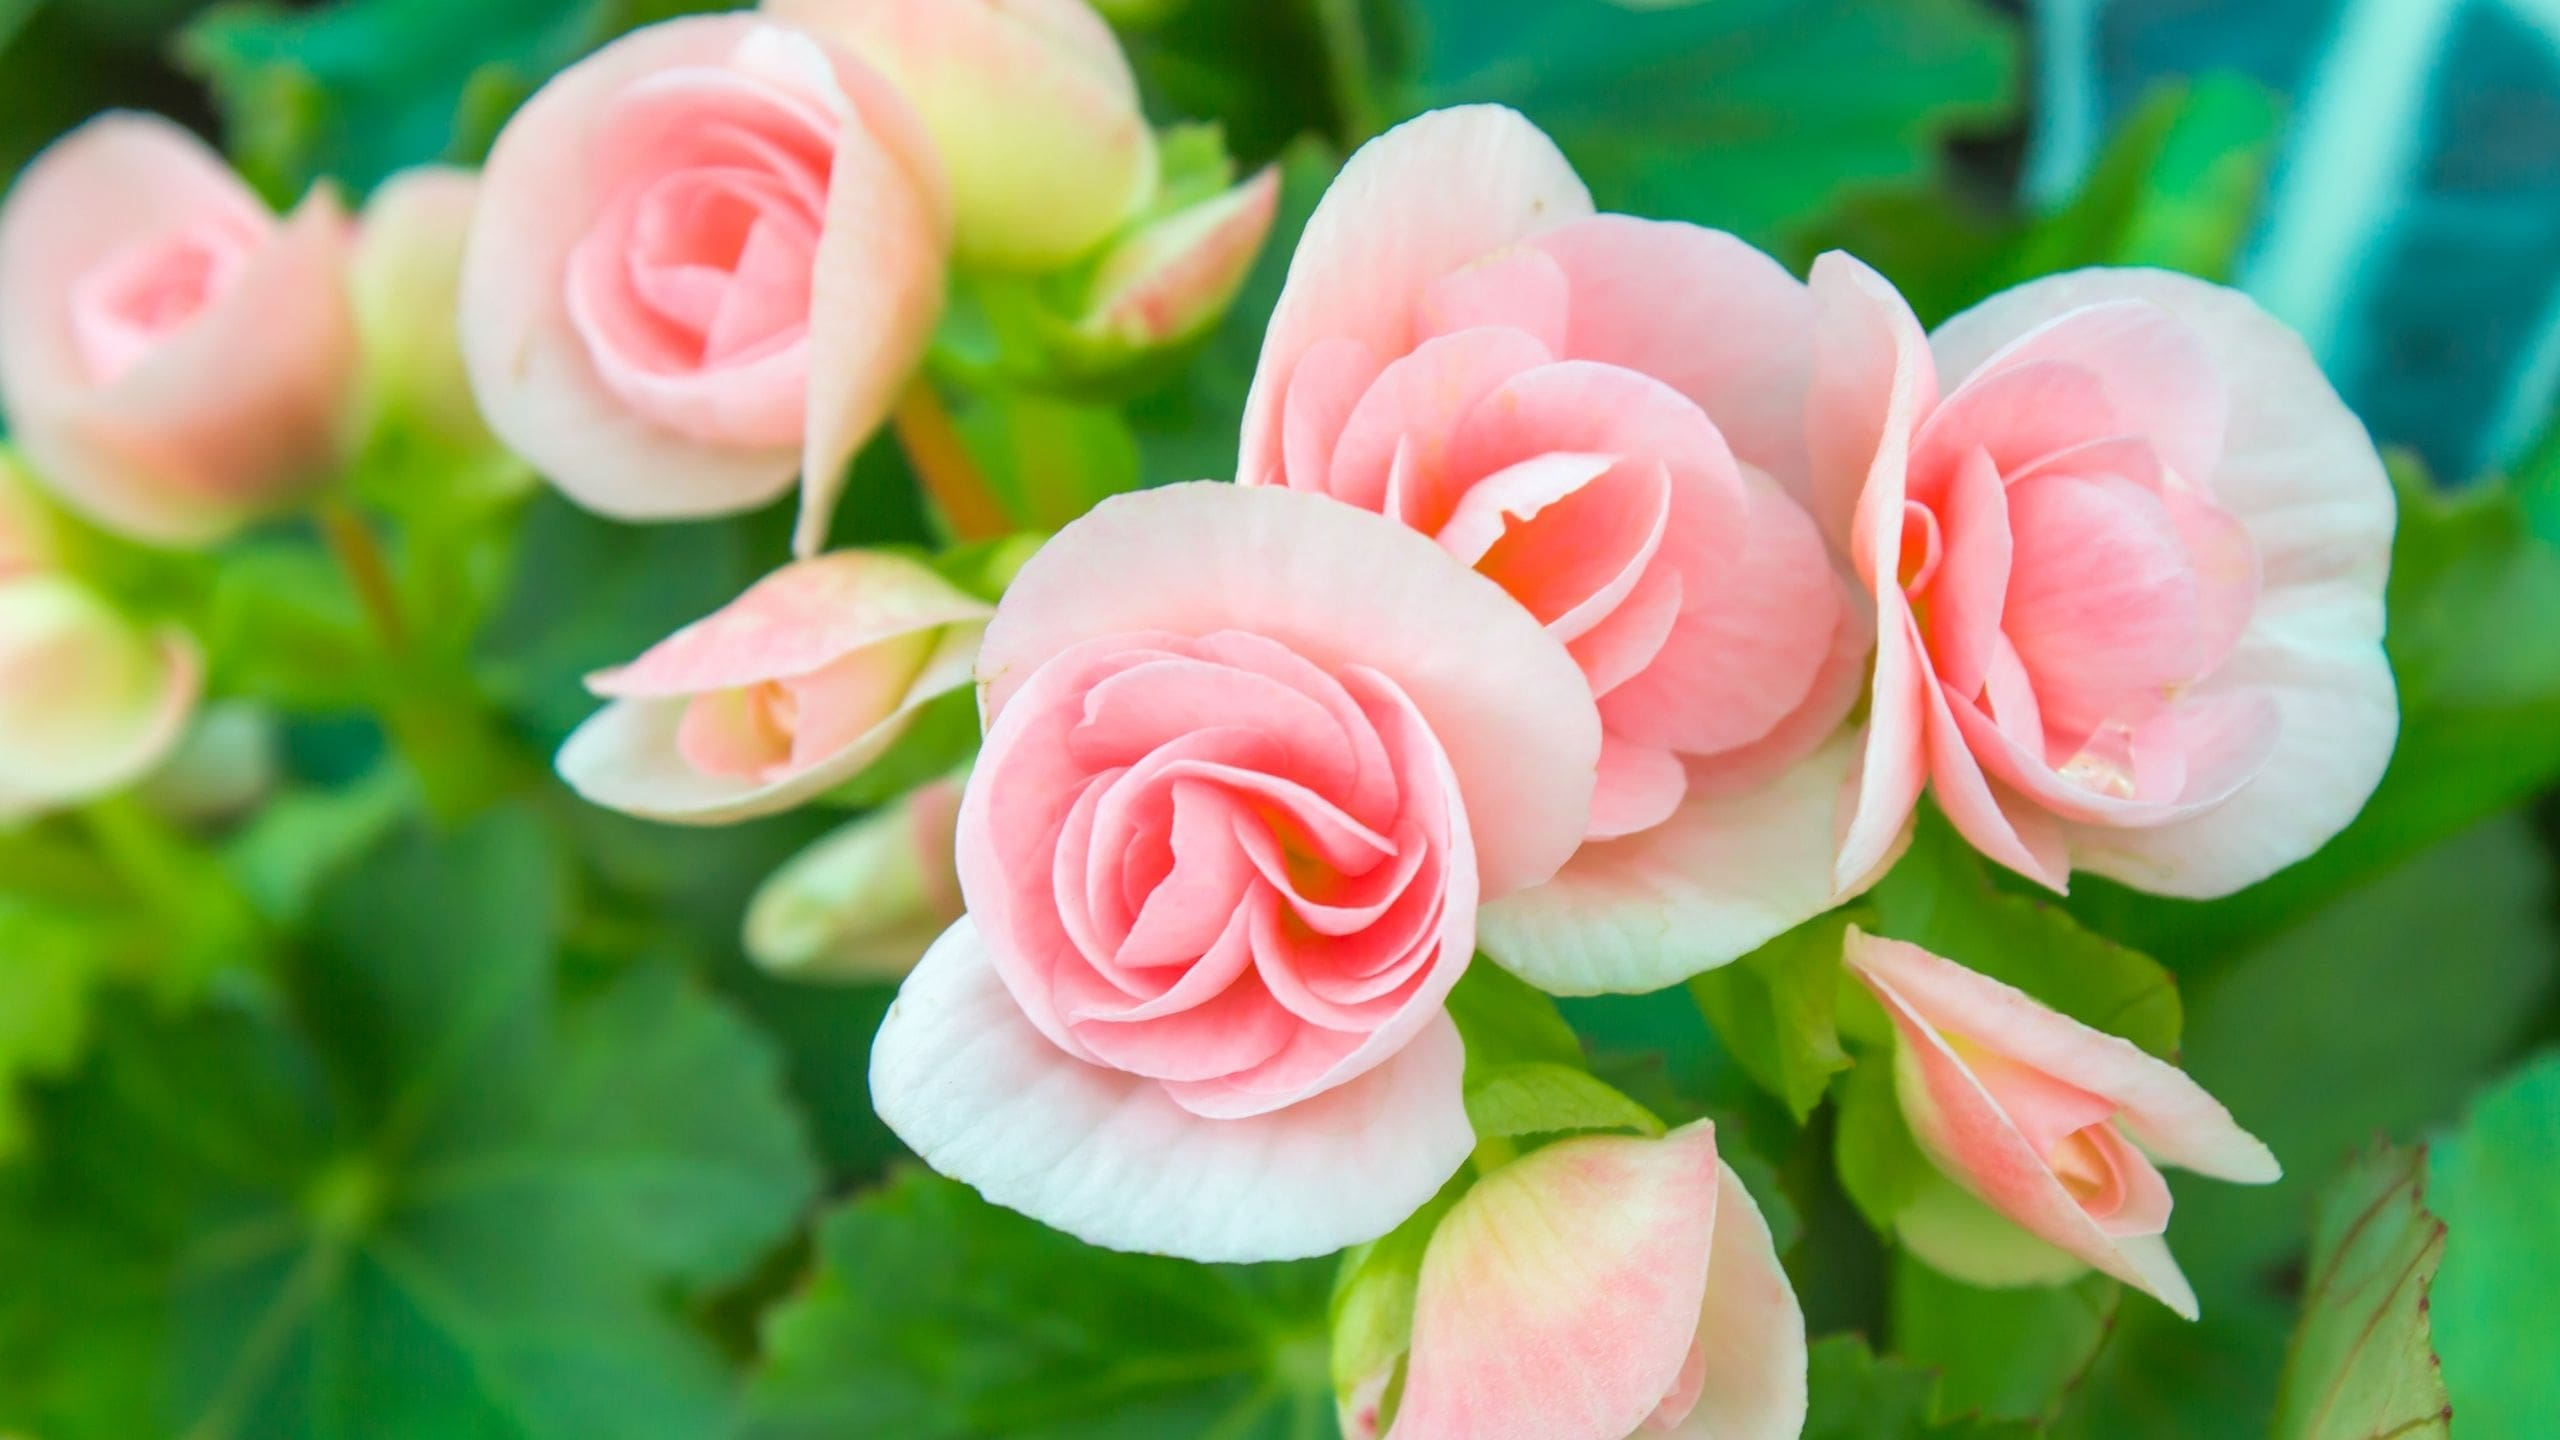 How To Care For Mini Roses